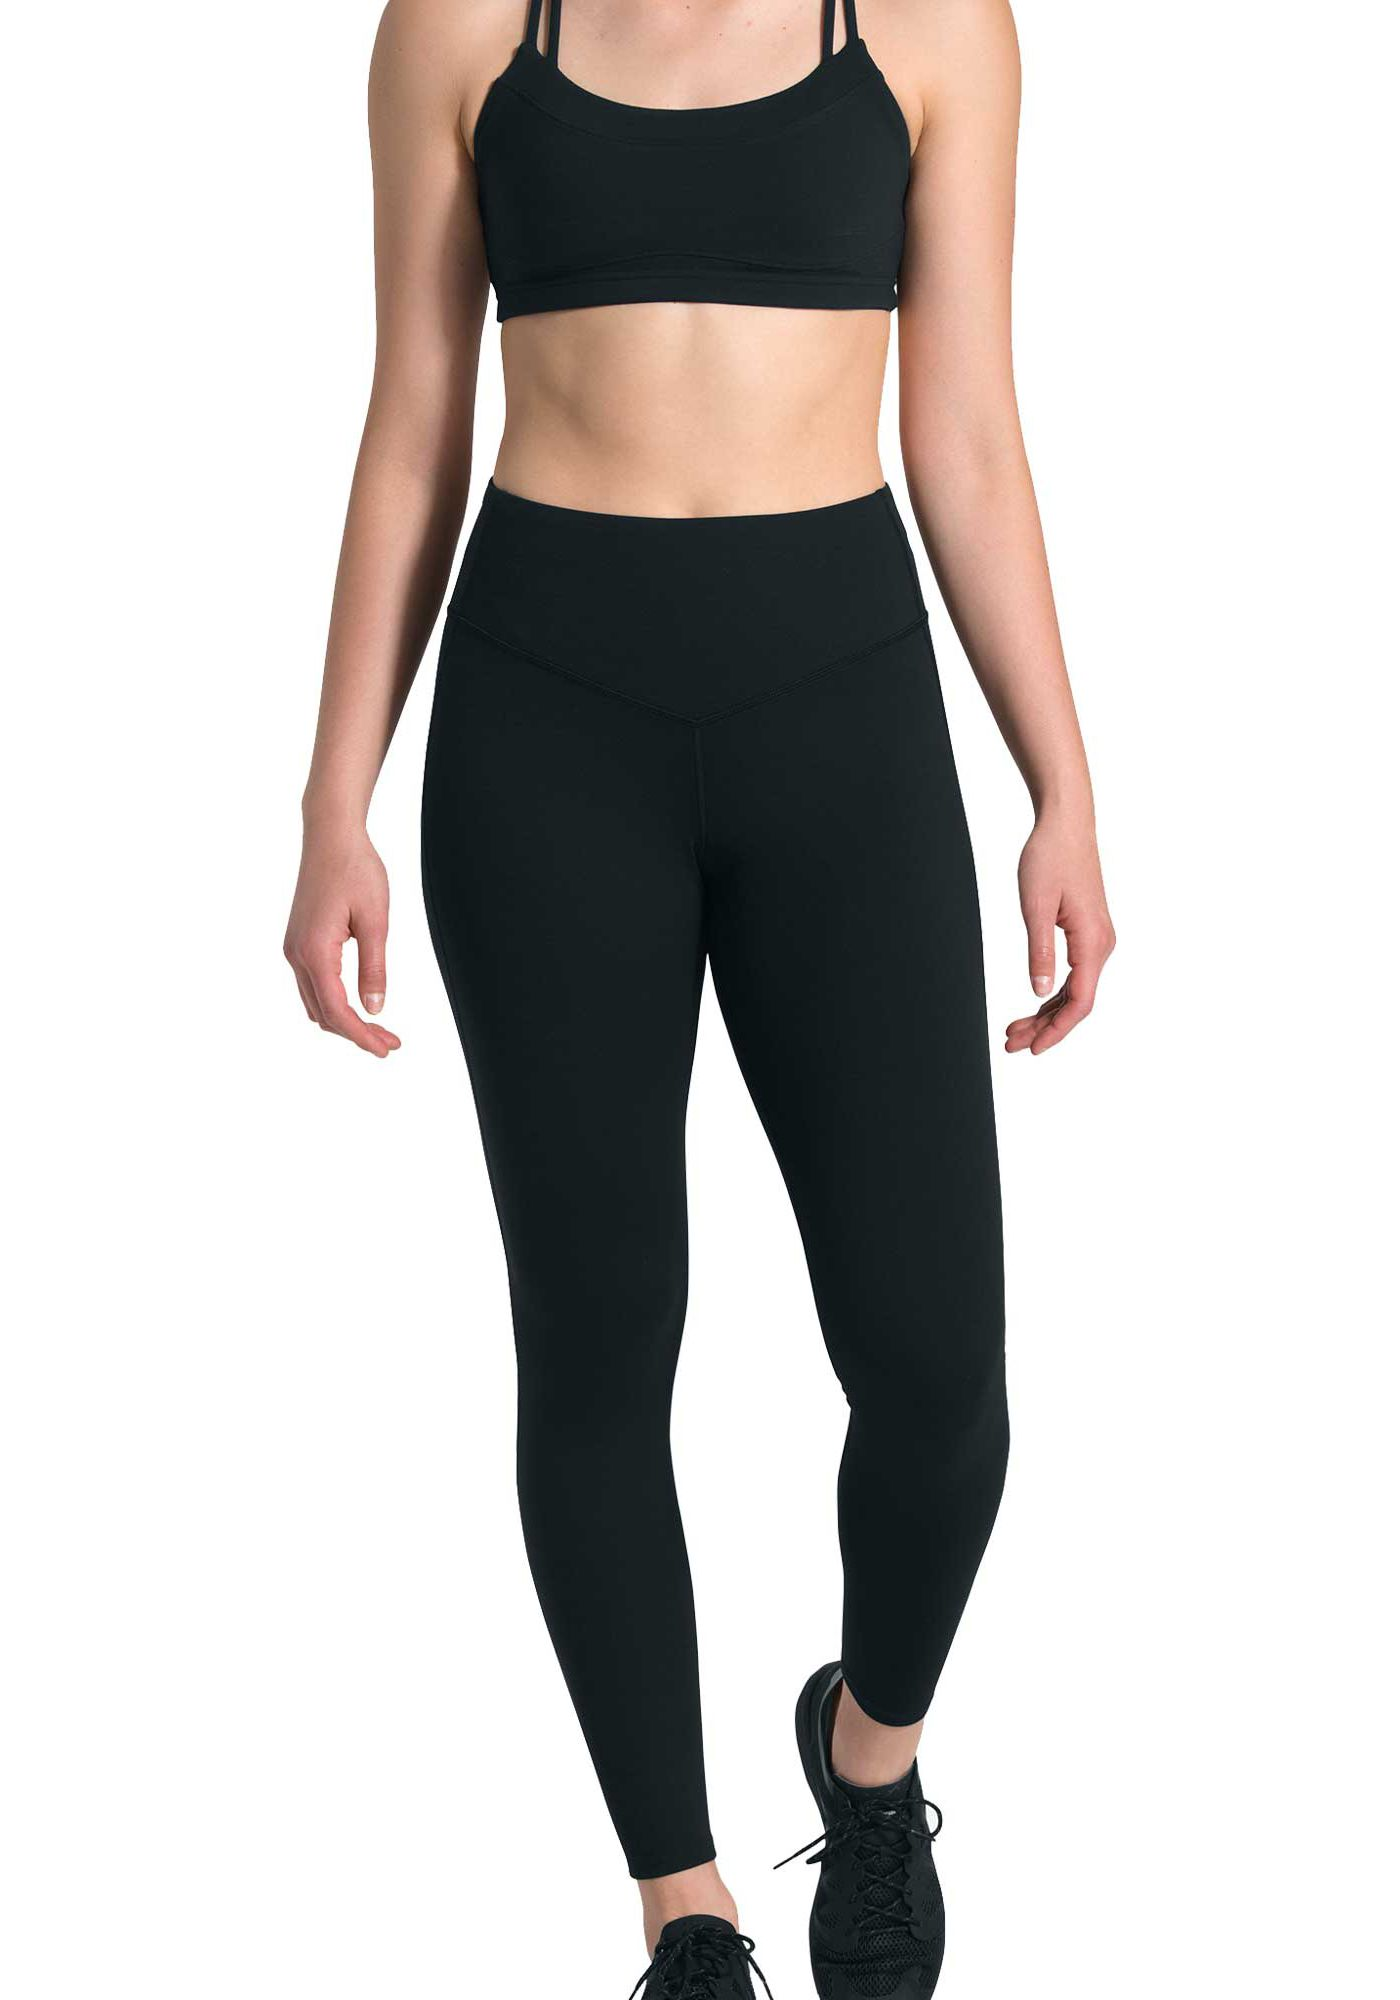 The North Face Women's Perfect Core High-Rise Tights